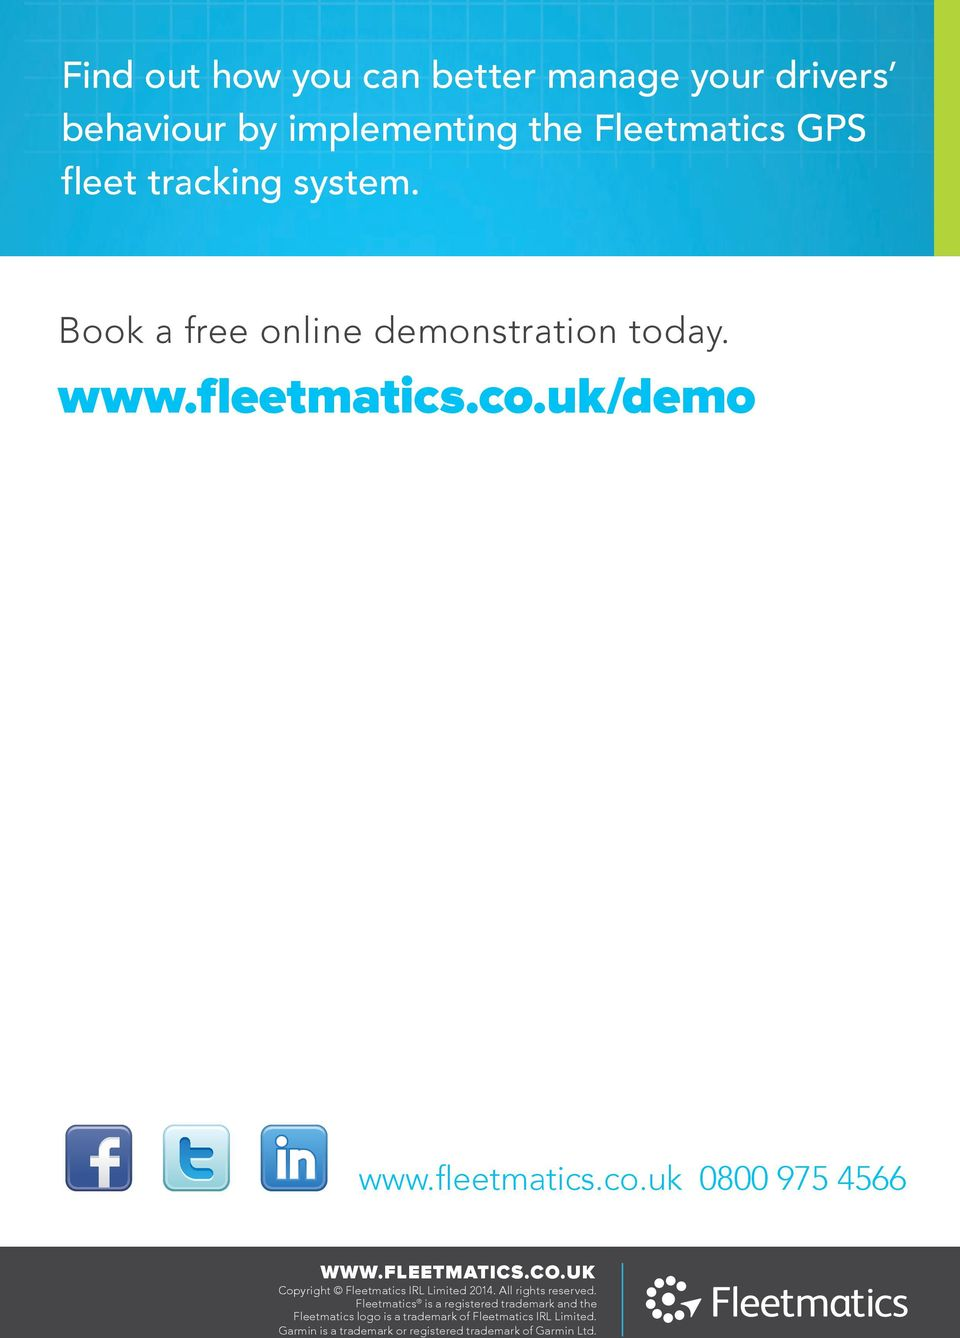 FLEETMATICS.CO.UK Copyright Fleetmatics IRL Limited 2014. All rights reserved.